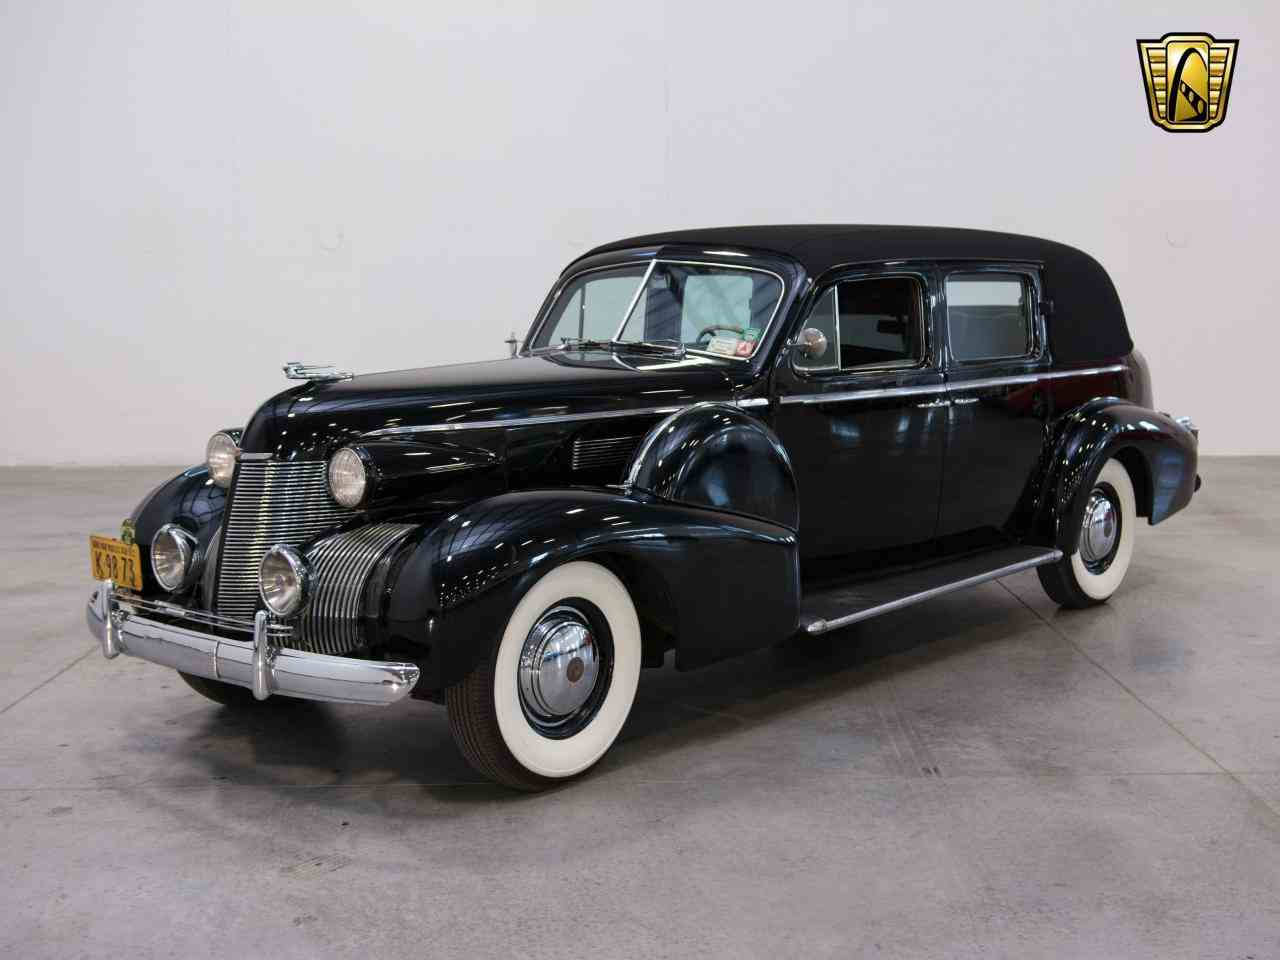 Large Picture of 1939 Cadillac 7 Passenger Touring W/ Trunk - $58,000.00 - KHP0